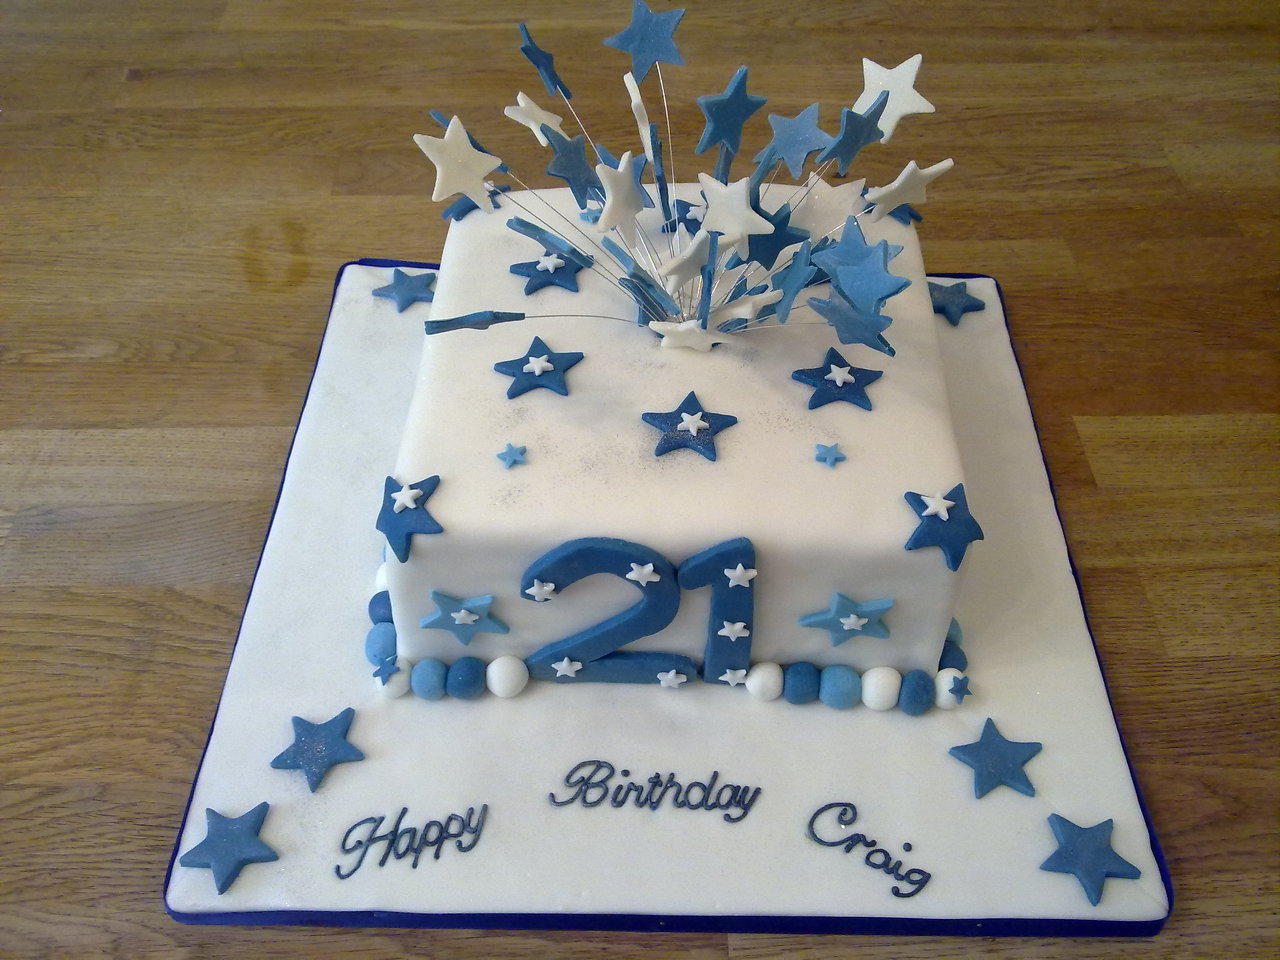 Cake Decorating Ideas For 18 Year Old Boy : 21st Birthday Cakes   Decoration Ideas Little Birthday Cakes